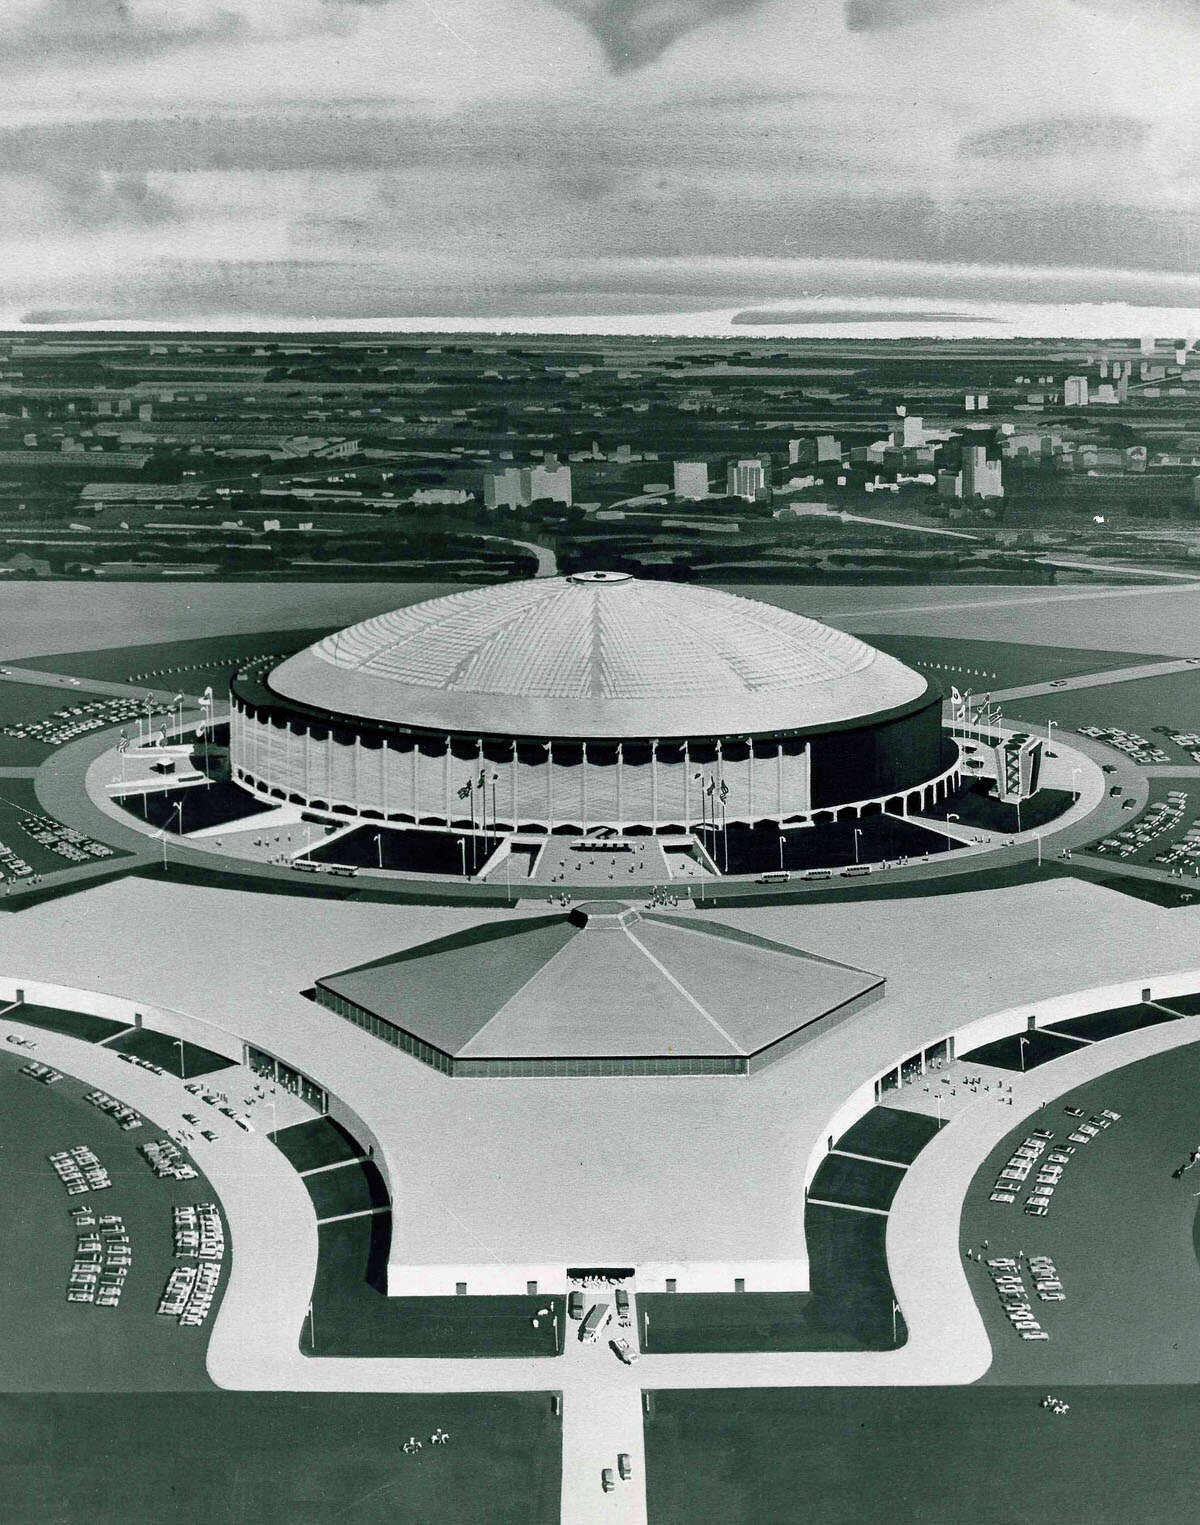 The year 1966 was the first year the Houston Livestock Show and Rodeo was held in the AstroDome. This is a 1965 rendering of the AstroHall as it would look when it was completed.